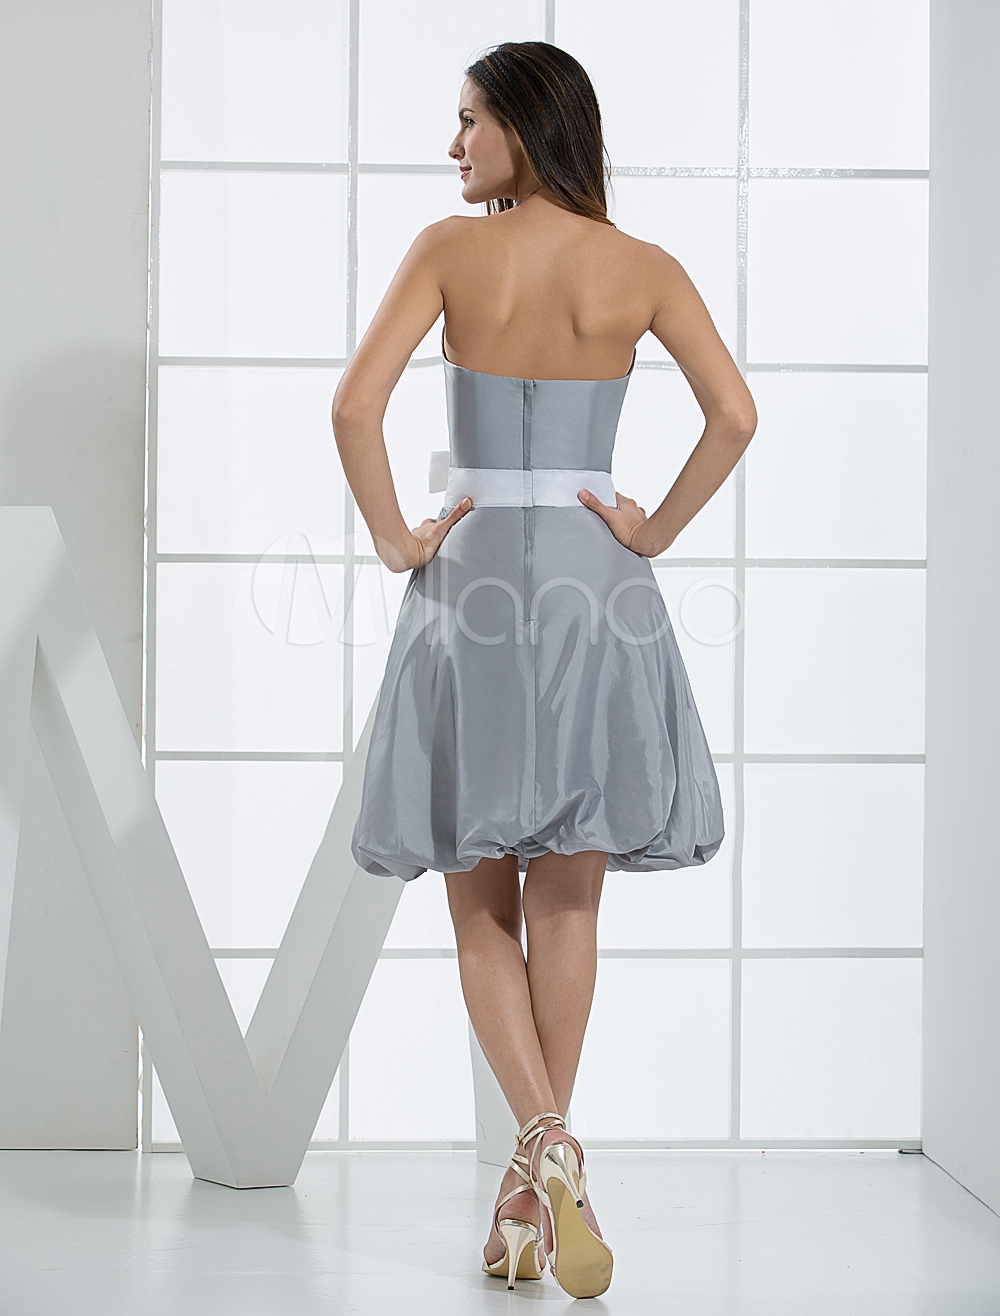 China Wholesale Dresses - Fabulous A-line Strapless Sweetheart Sash Pleated Taffeta Summer Prom Dress